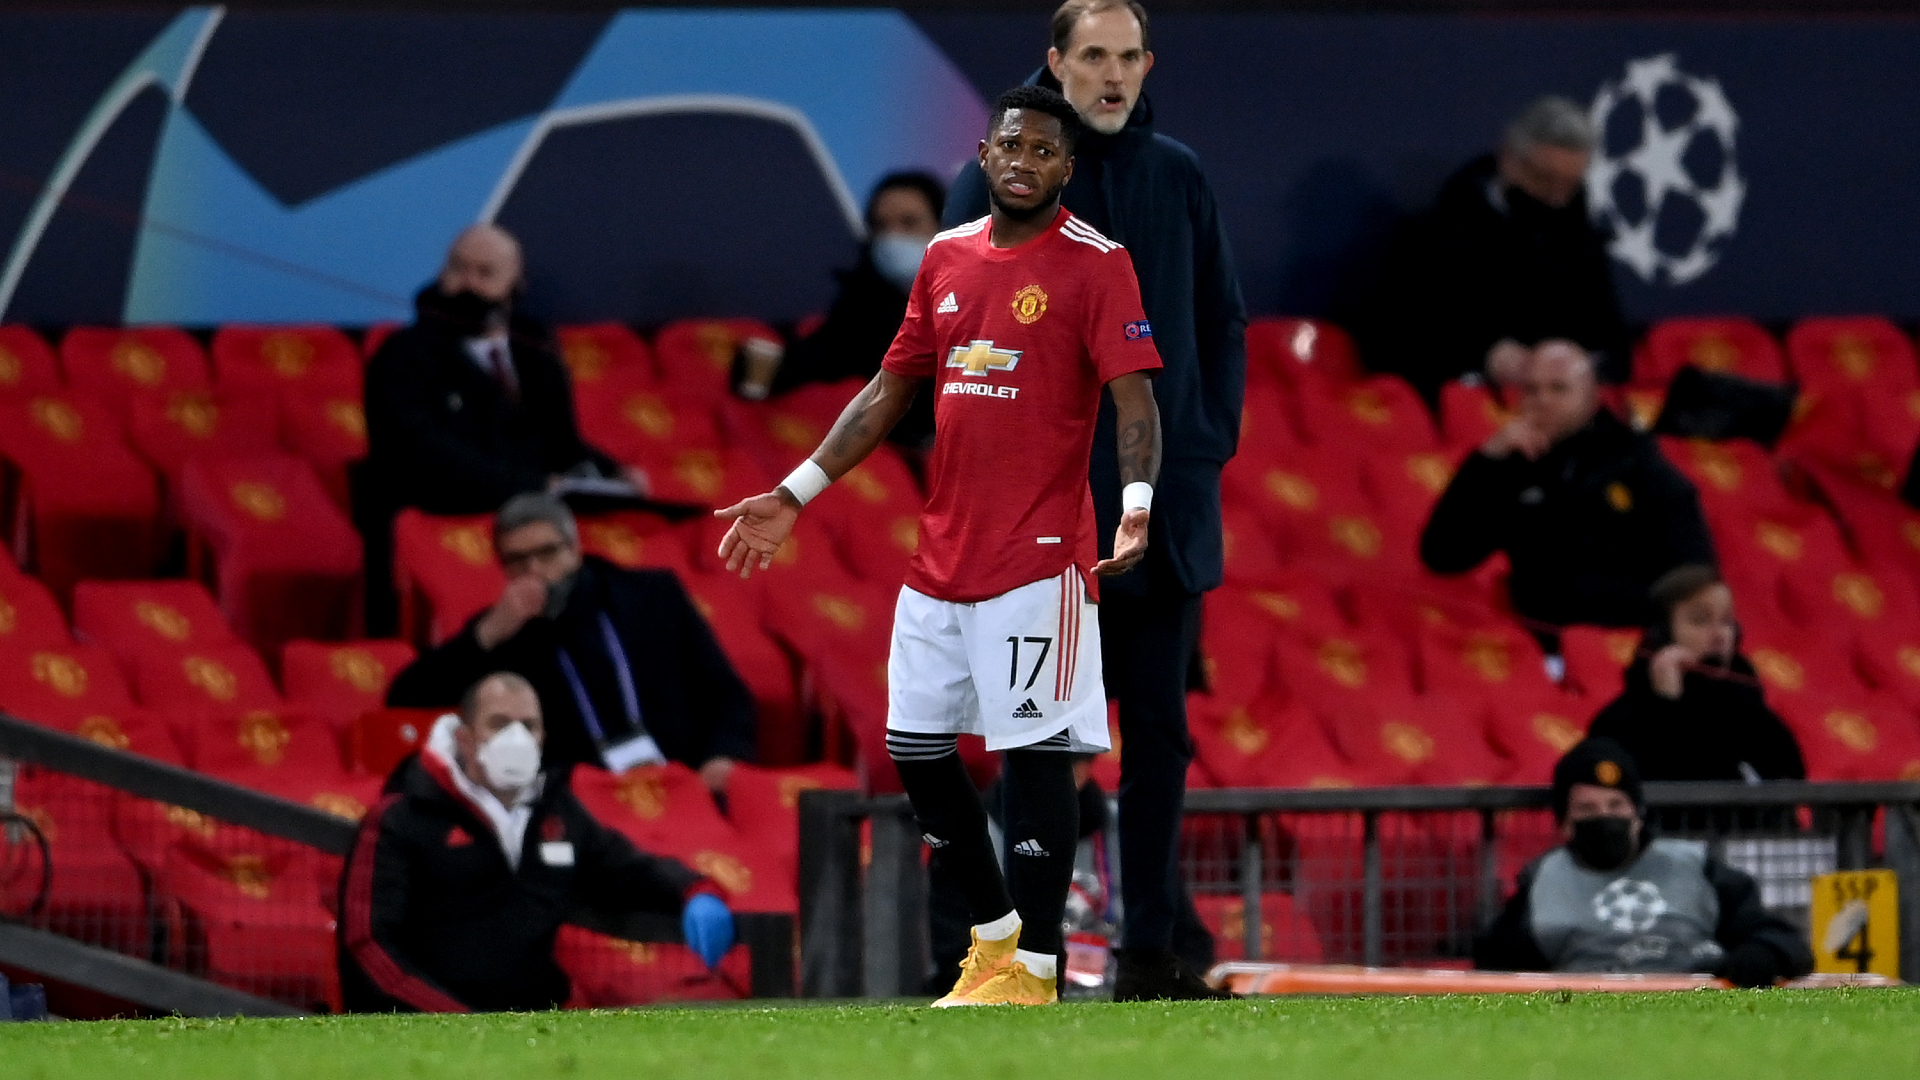 Fred red card 'nowhere near a foul', says Solskjaer